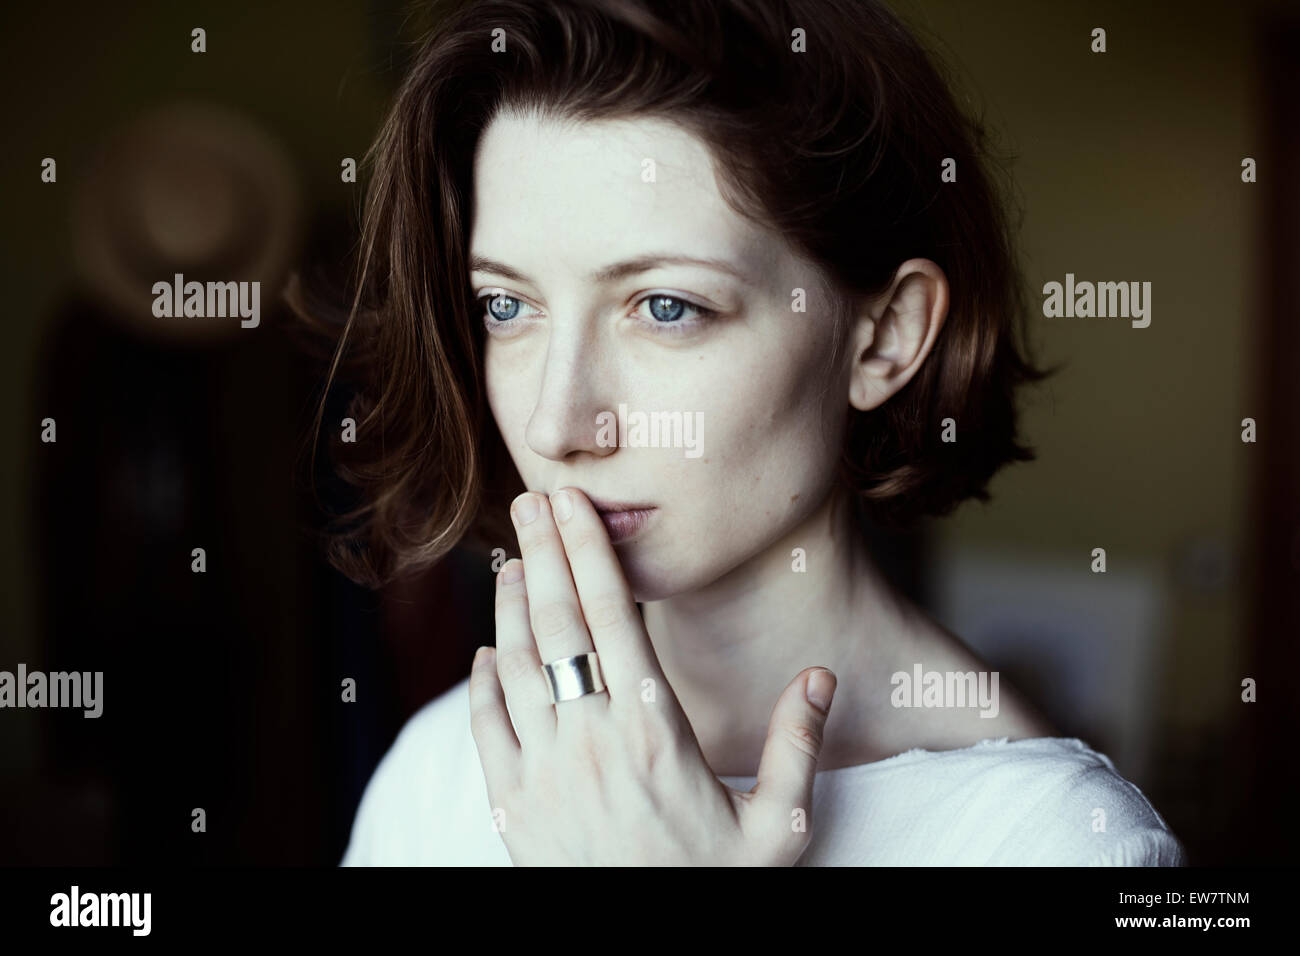 Portrait of a woman holding her hand to her mouth - Stock Image